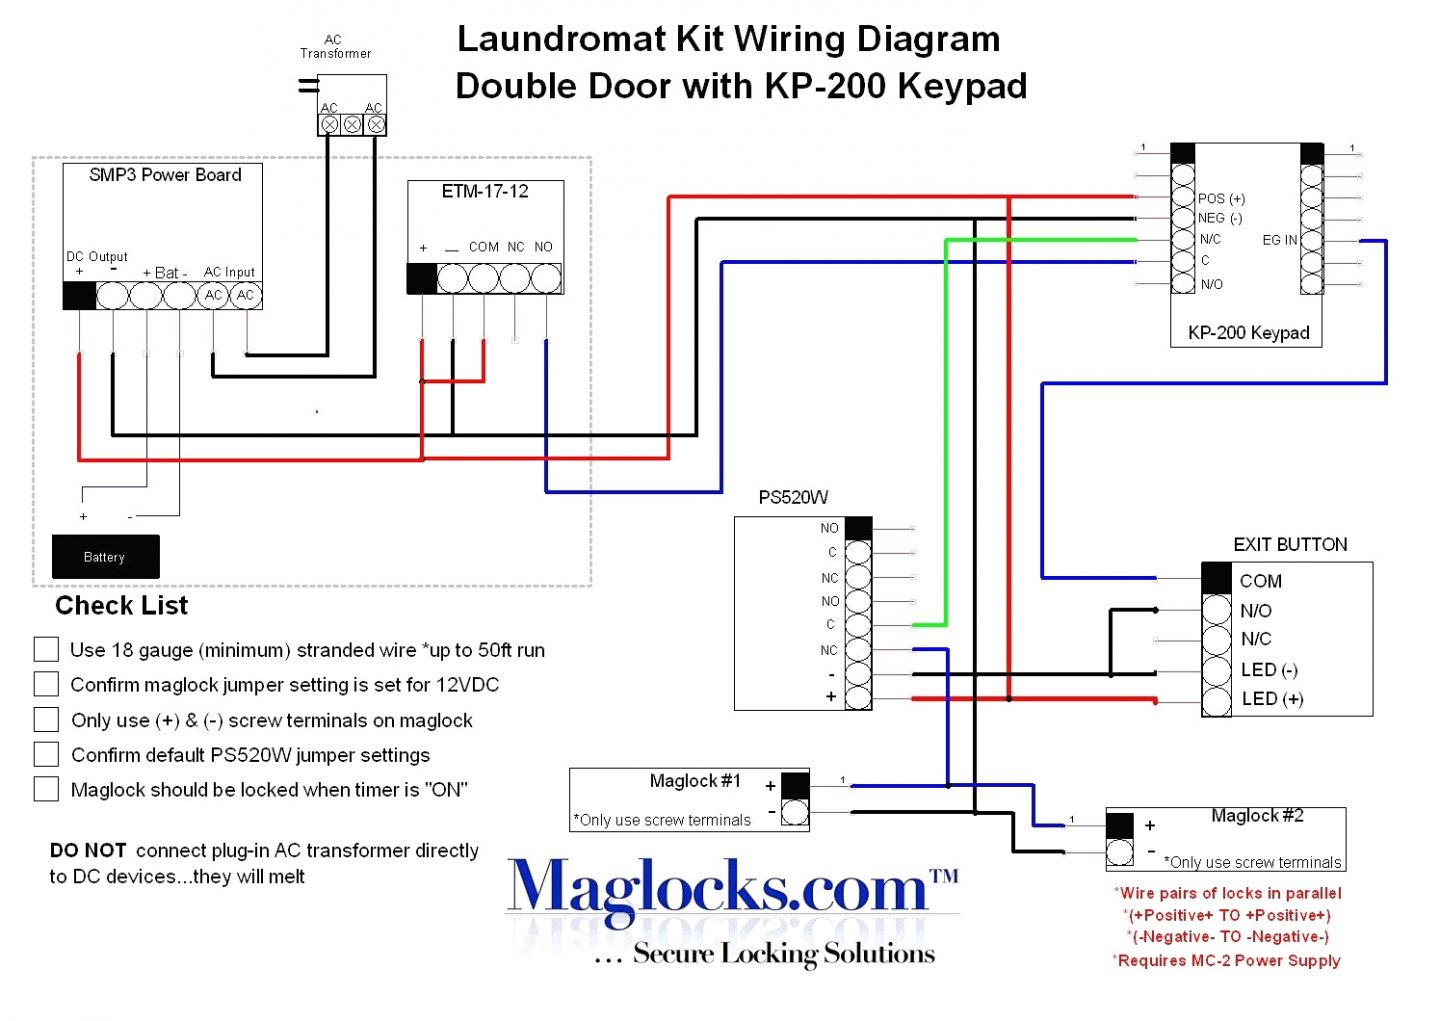 Fabulous Corby Wiring Diagrams Wiring Diagram Data Schema Wiring Digital Resources Spoatbouhousnl